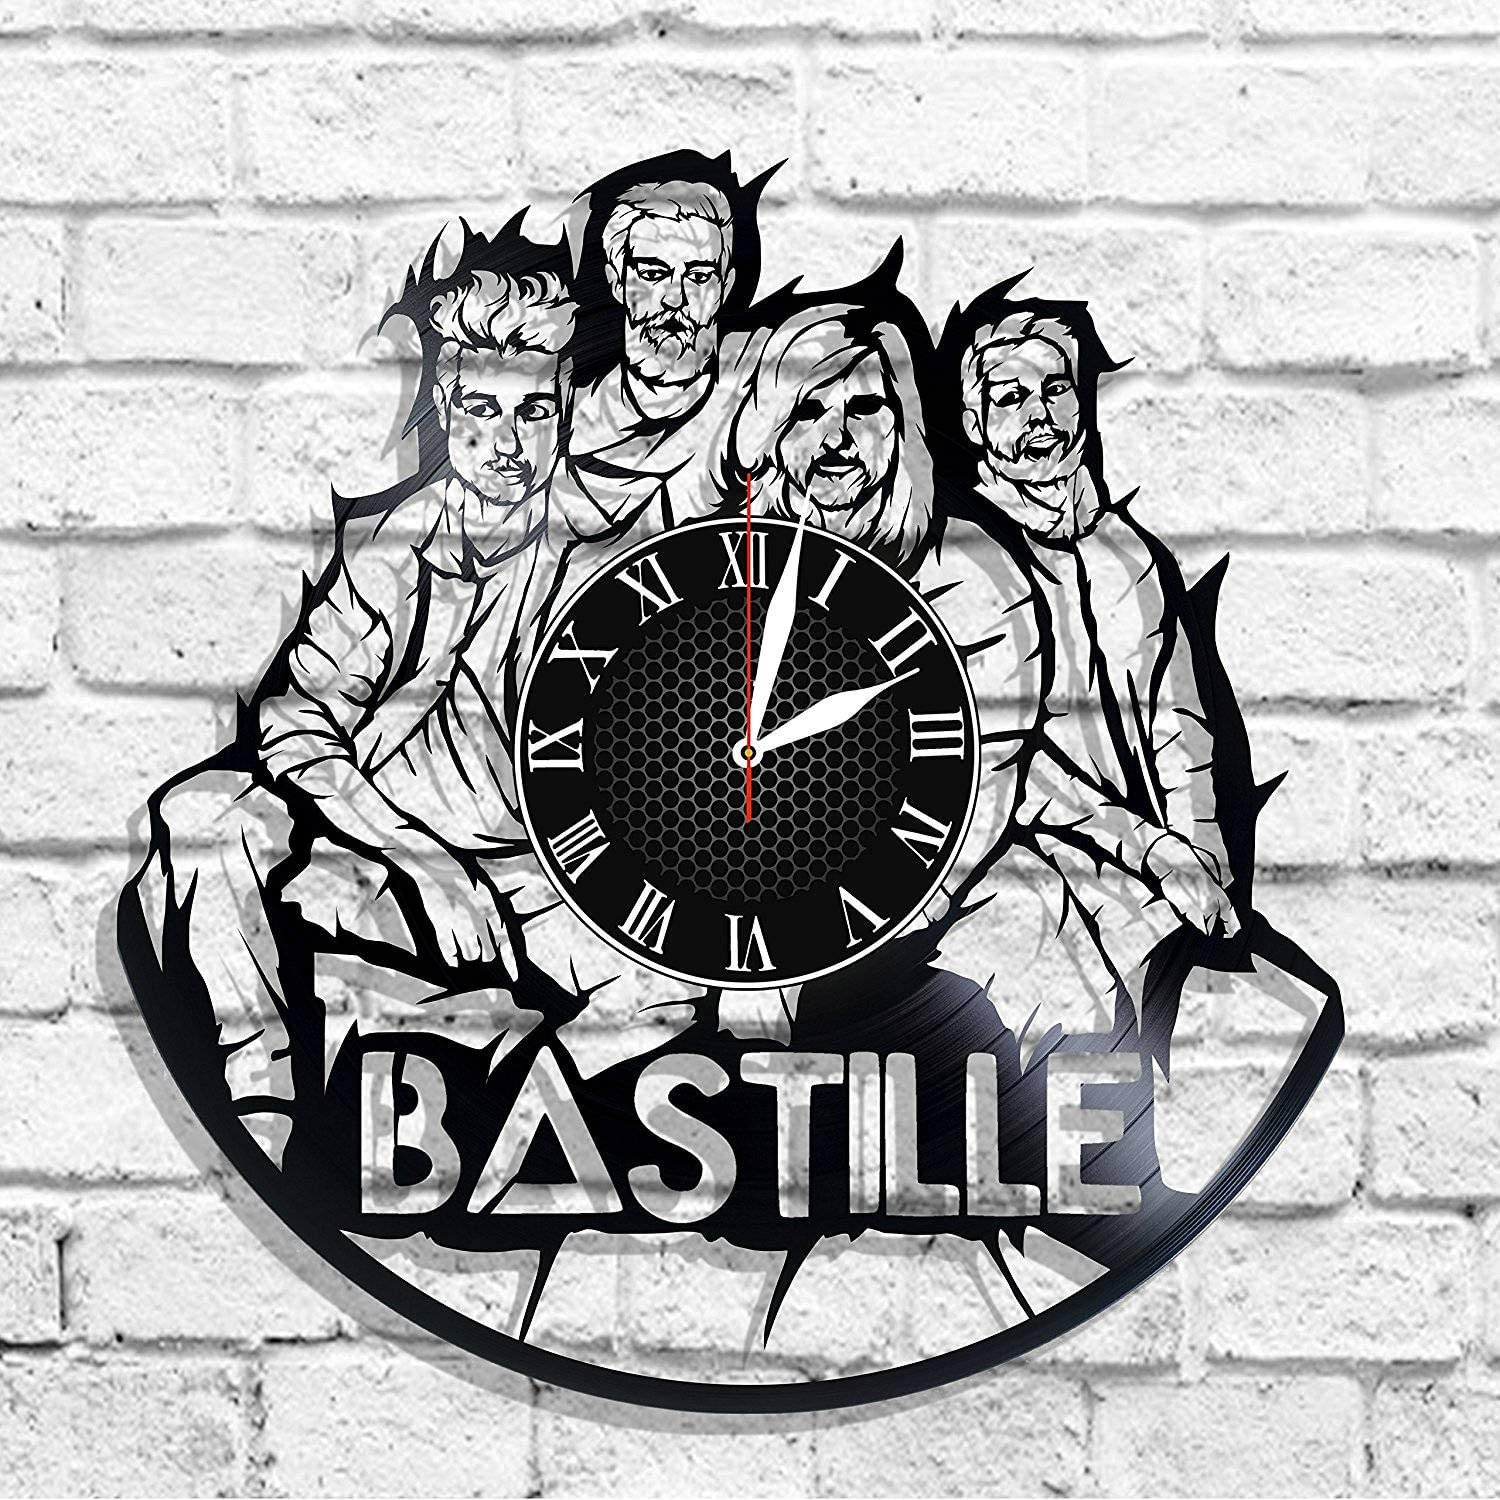 BombStudio Bastille Vinyl Record Wall Clock, Bastille Handmade for Kitchen, Office, Bedroom. Bastille Ideal Wall Poster